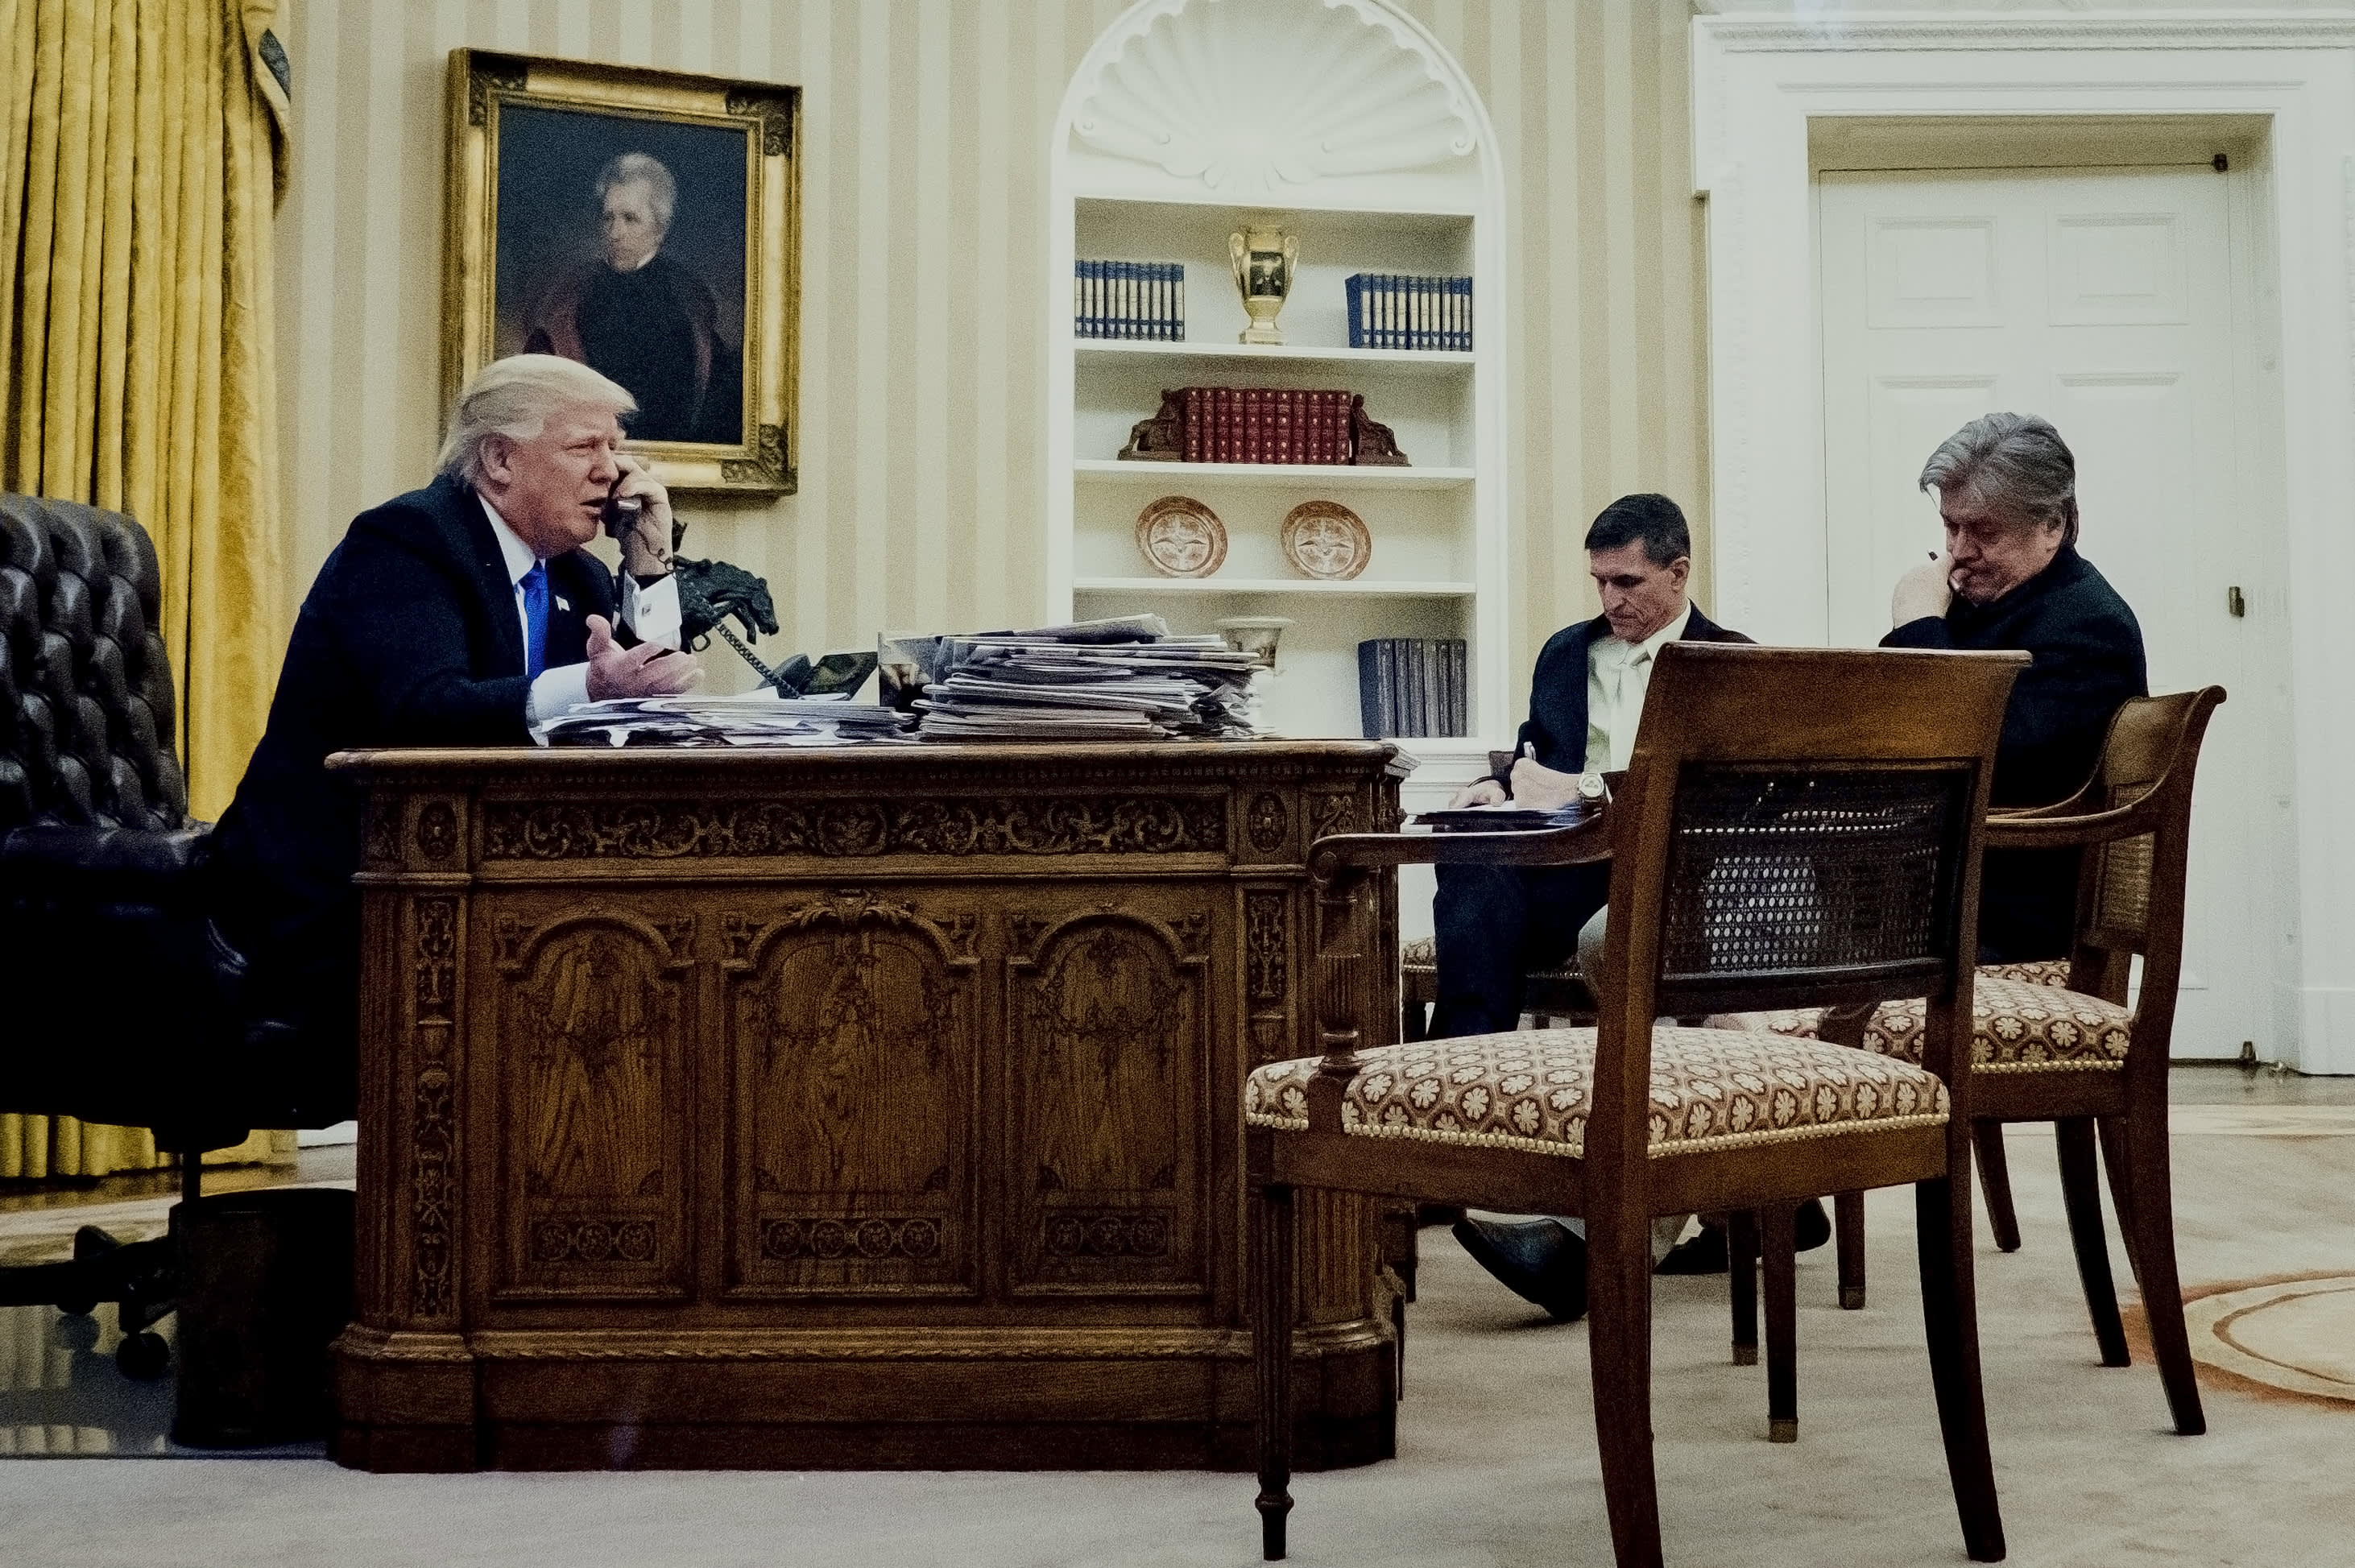 The tools helping facilitate leaks from Trump's White House